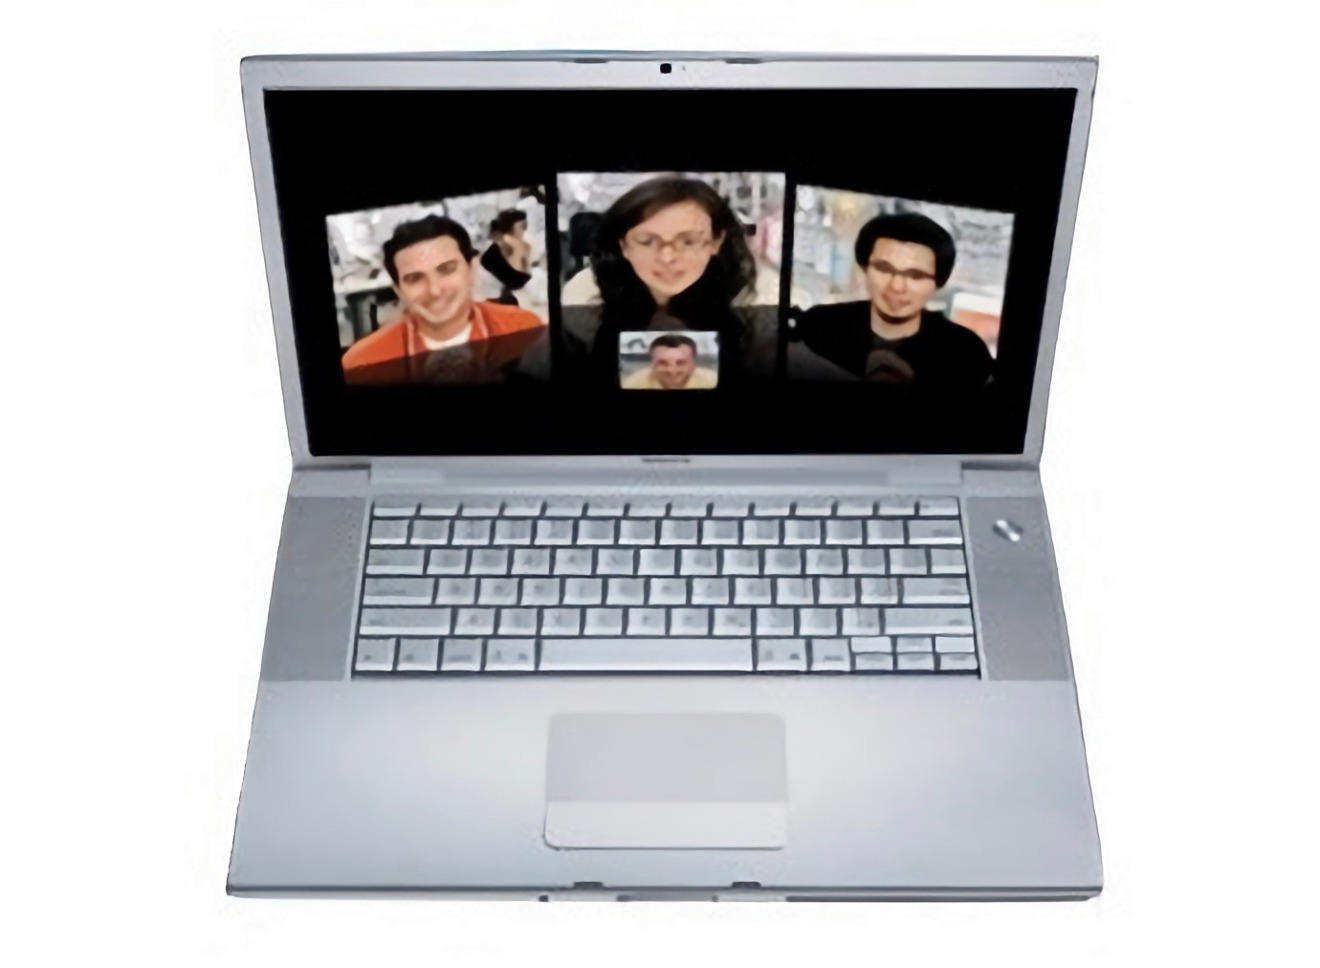 Featured a nearly identical design to the PowerBook G4.